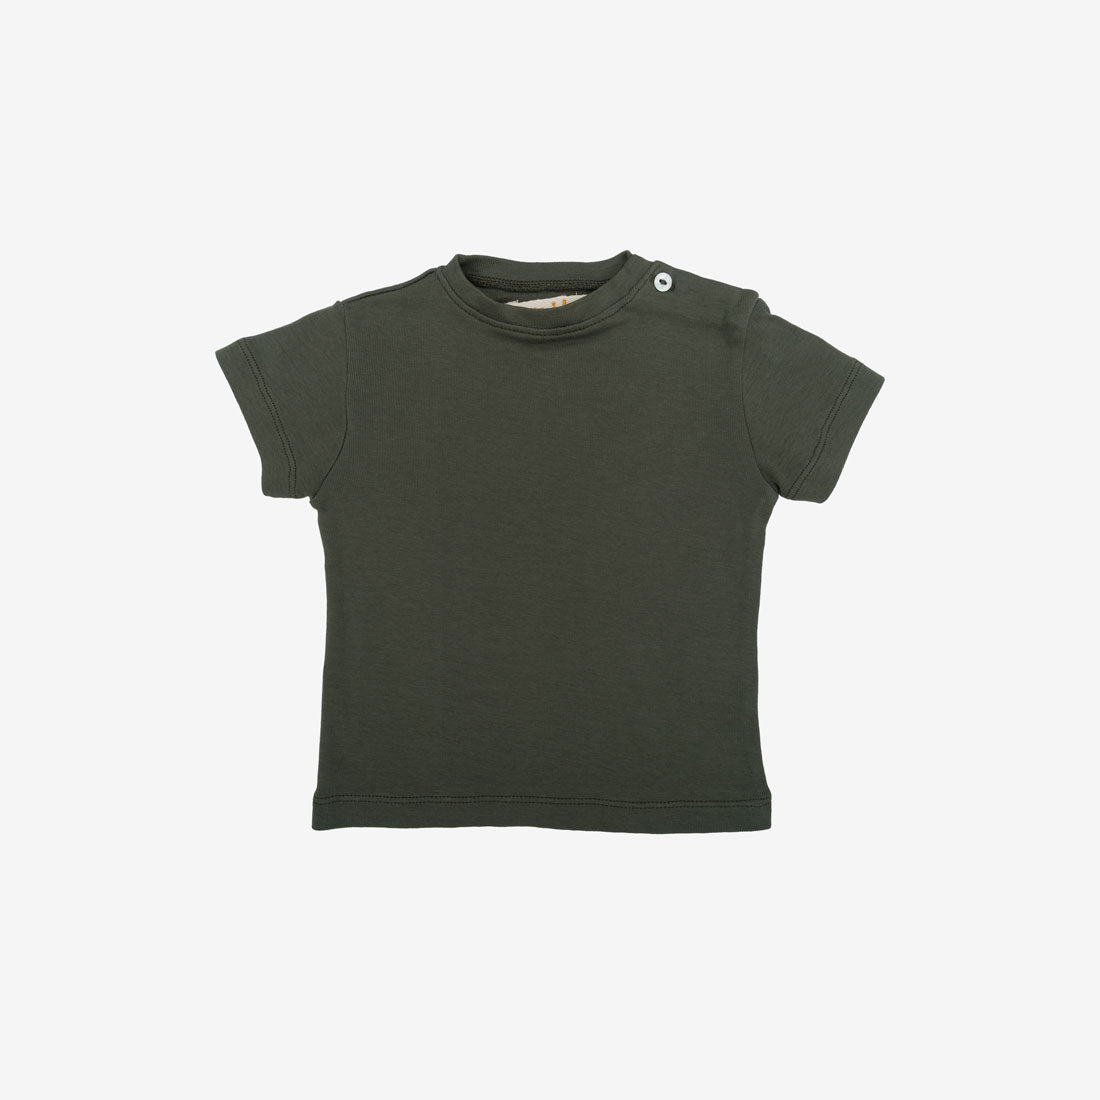 Lupe Organic Jersey S/S T-shirt - Seaweed